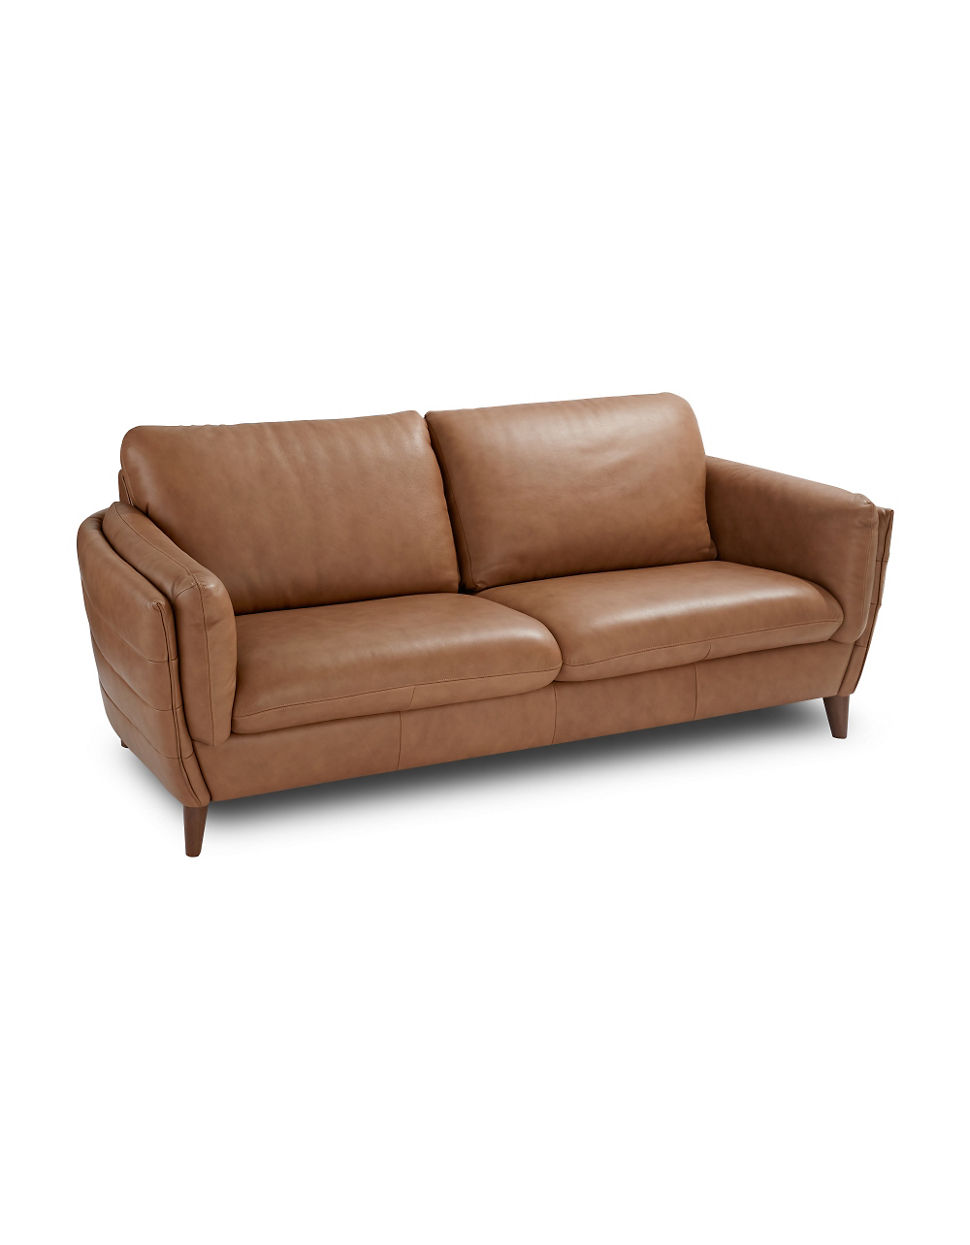 Natuzzi Leather Sofa Bed Letto Zip Bed For Sale